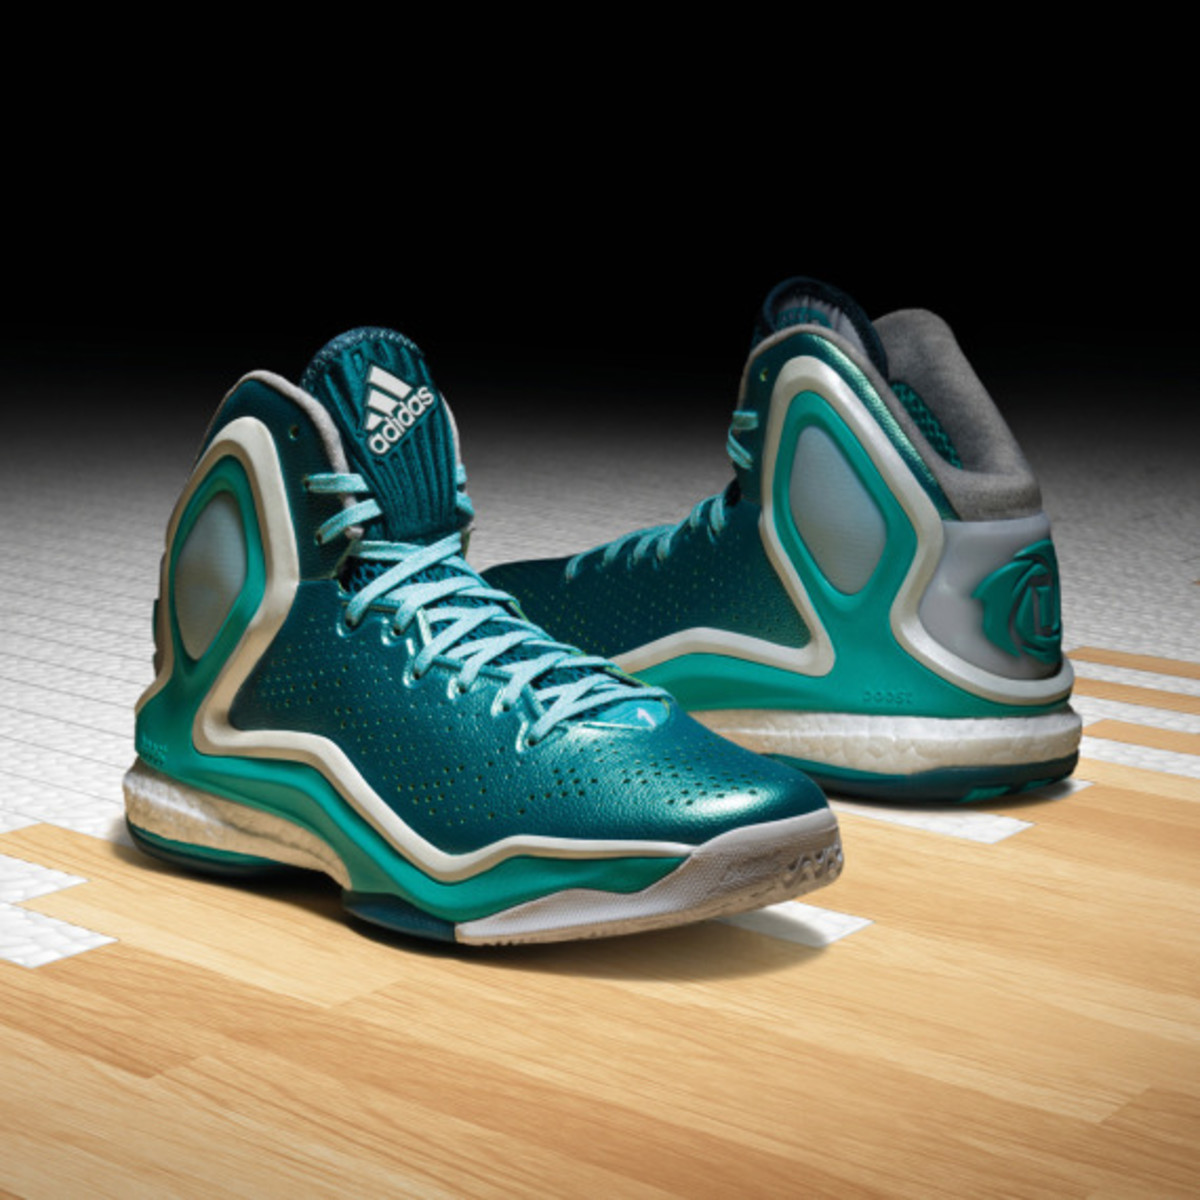 adidas-d-rose-5-boost-the-lake-04